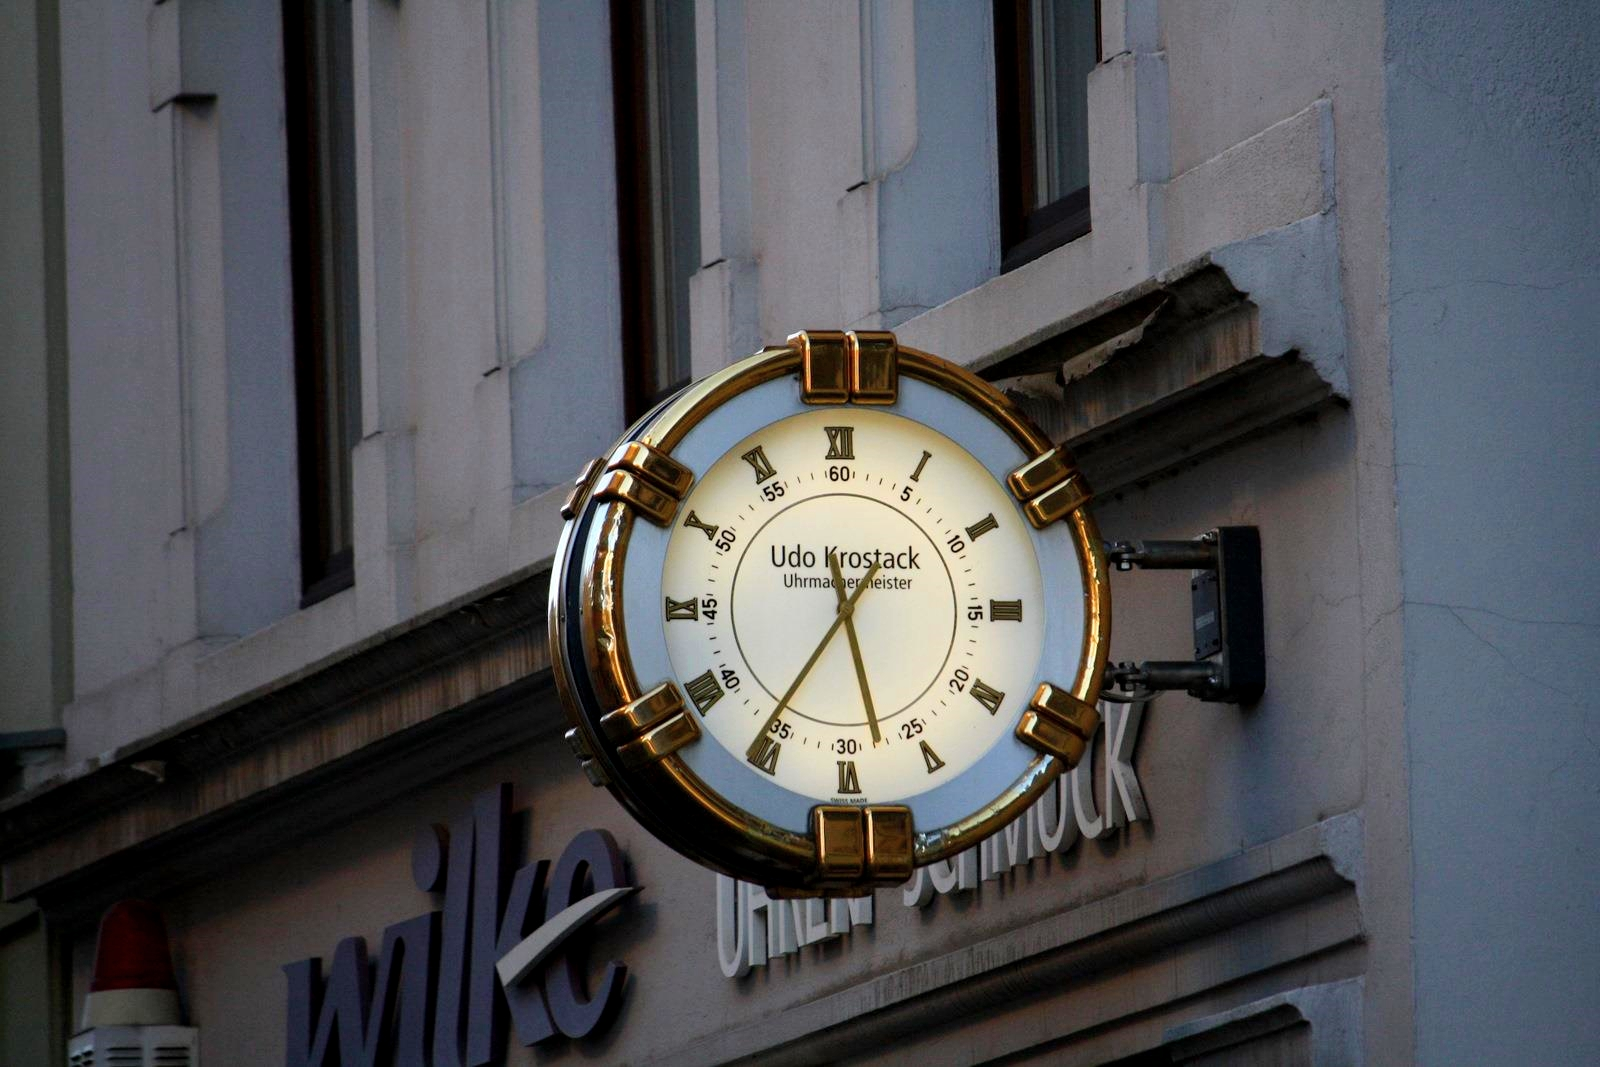 Clock in town by LoveForDetails